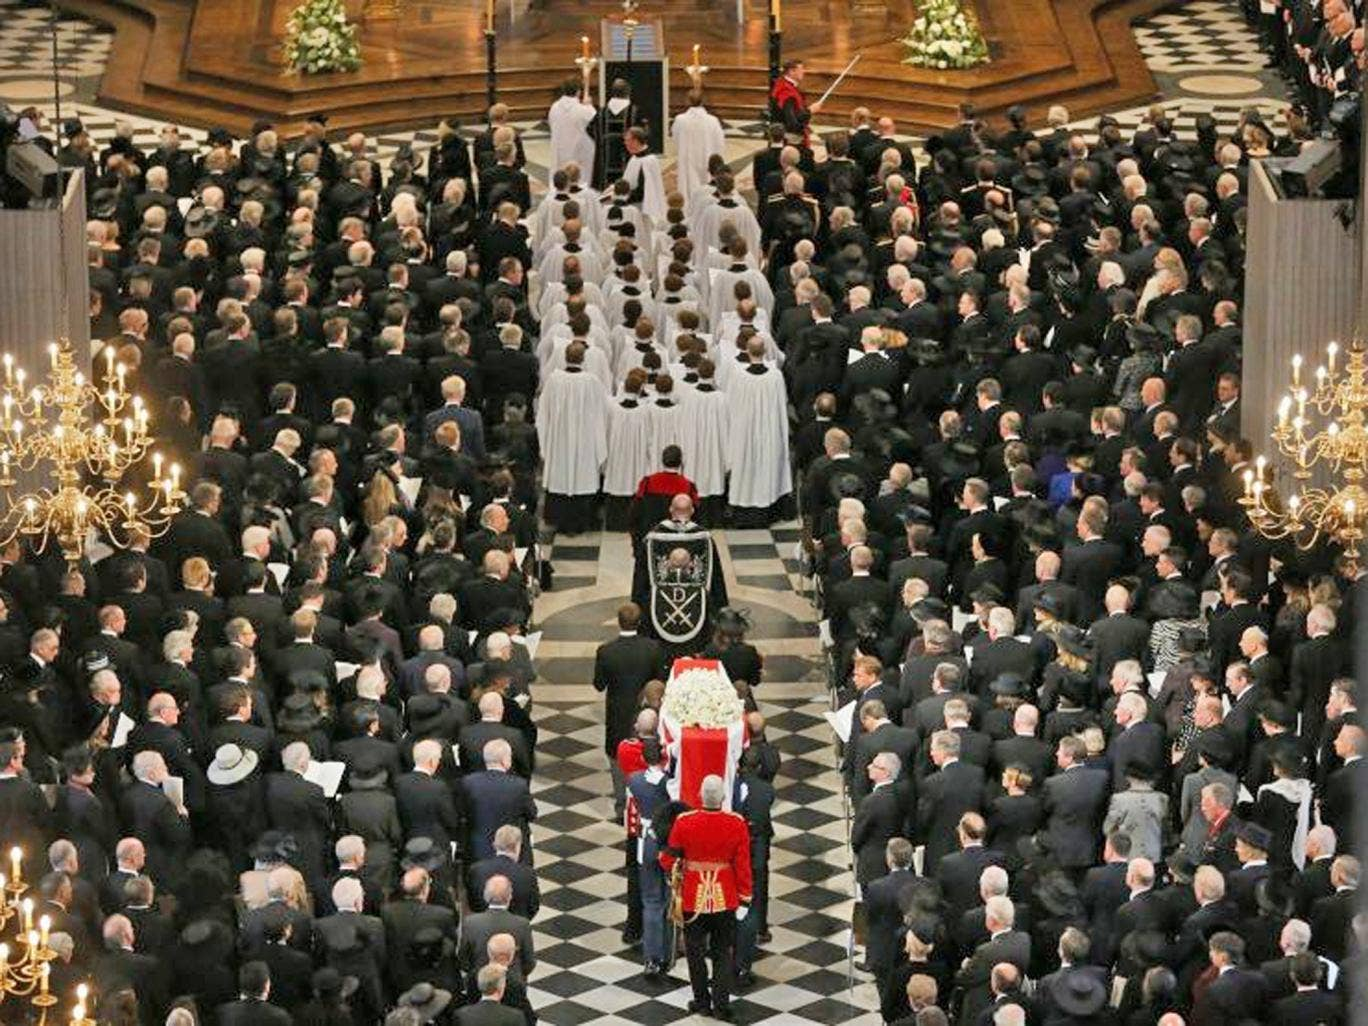 The coffin of former British prime minister Margaret Thatcher is carried by the Bearer Party as it arrives for her funeral service at St Paul's Cathedral